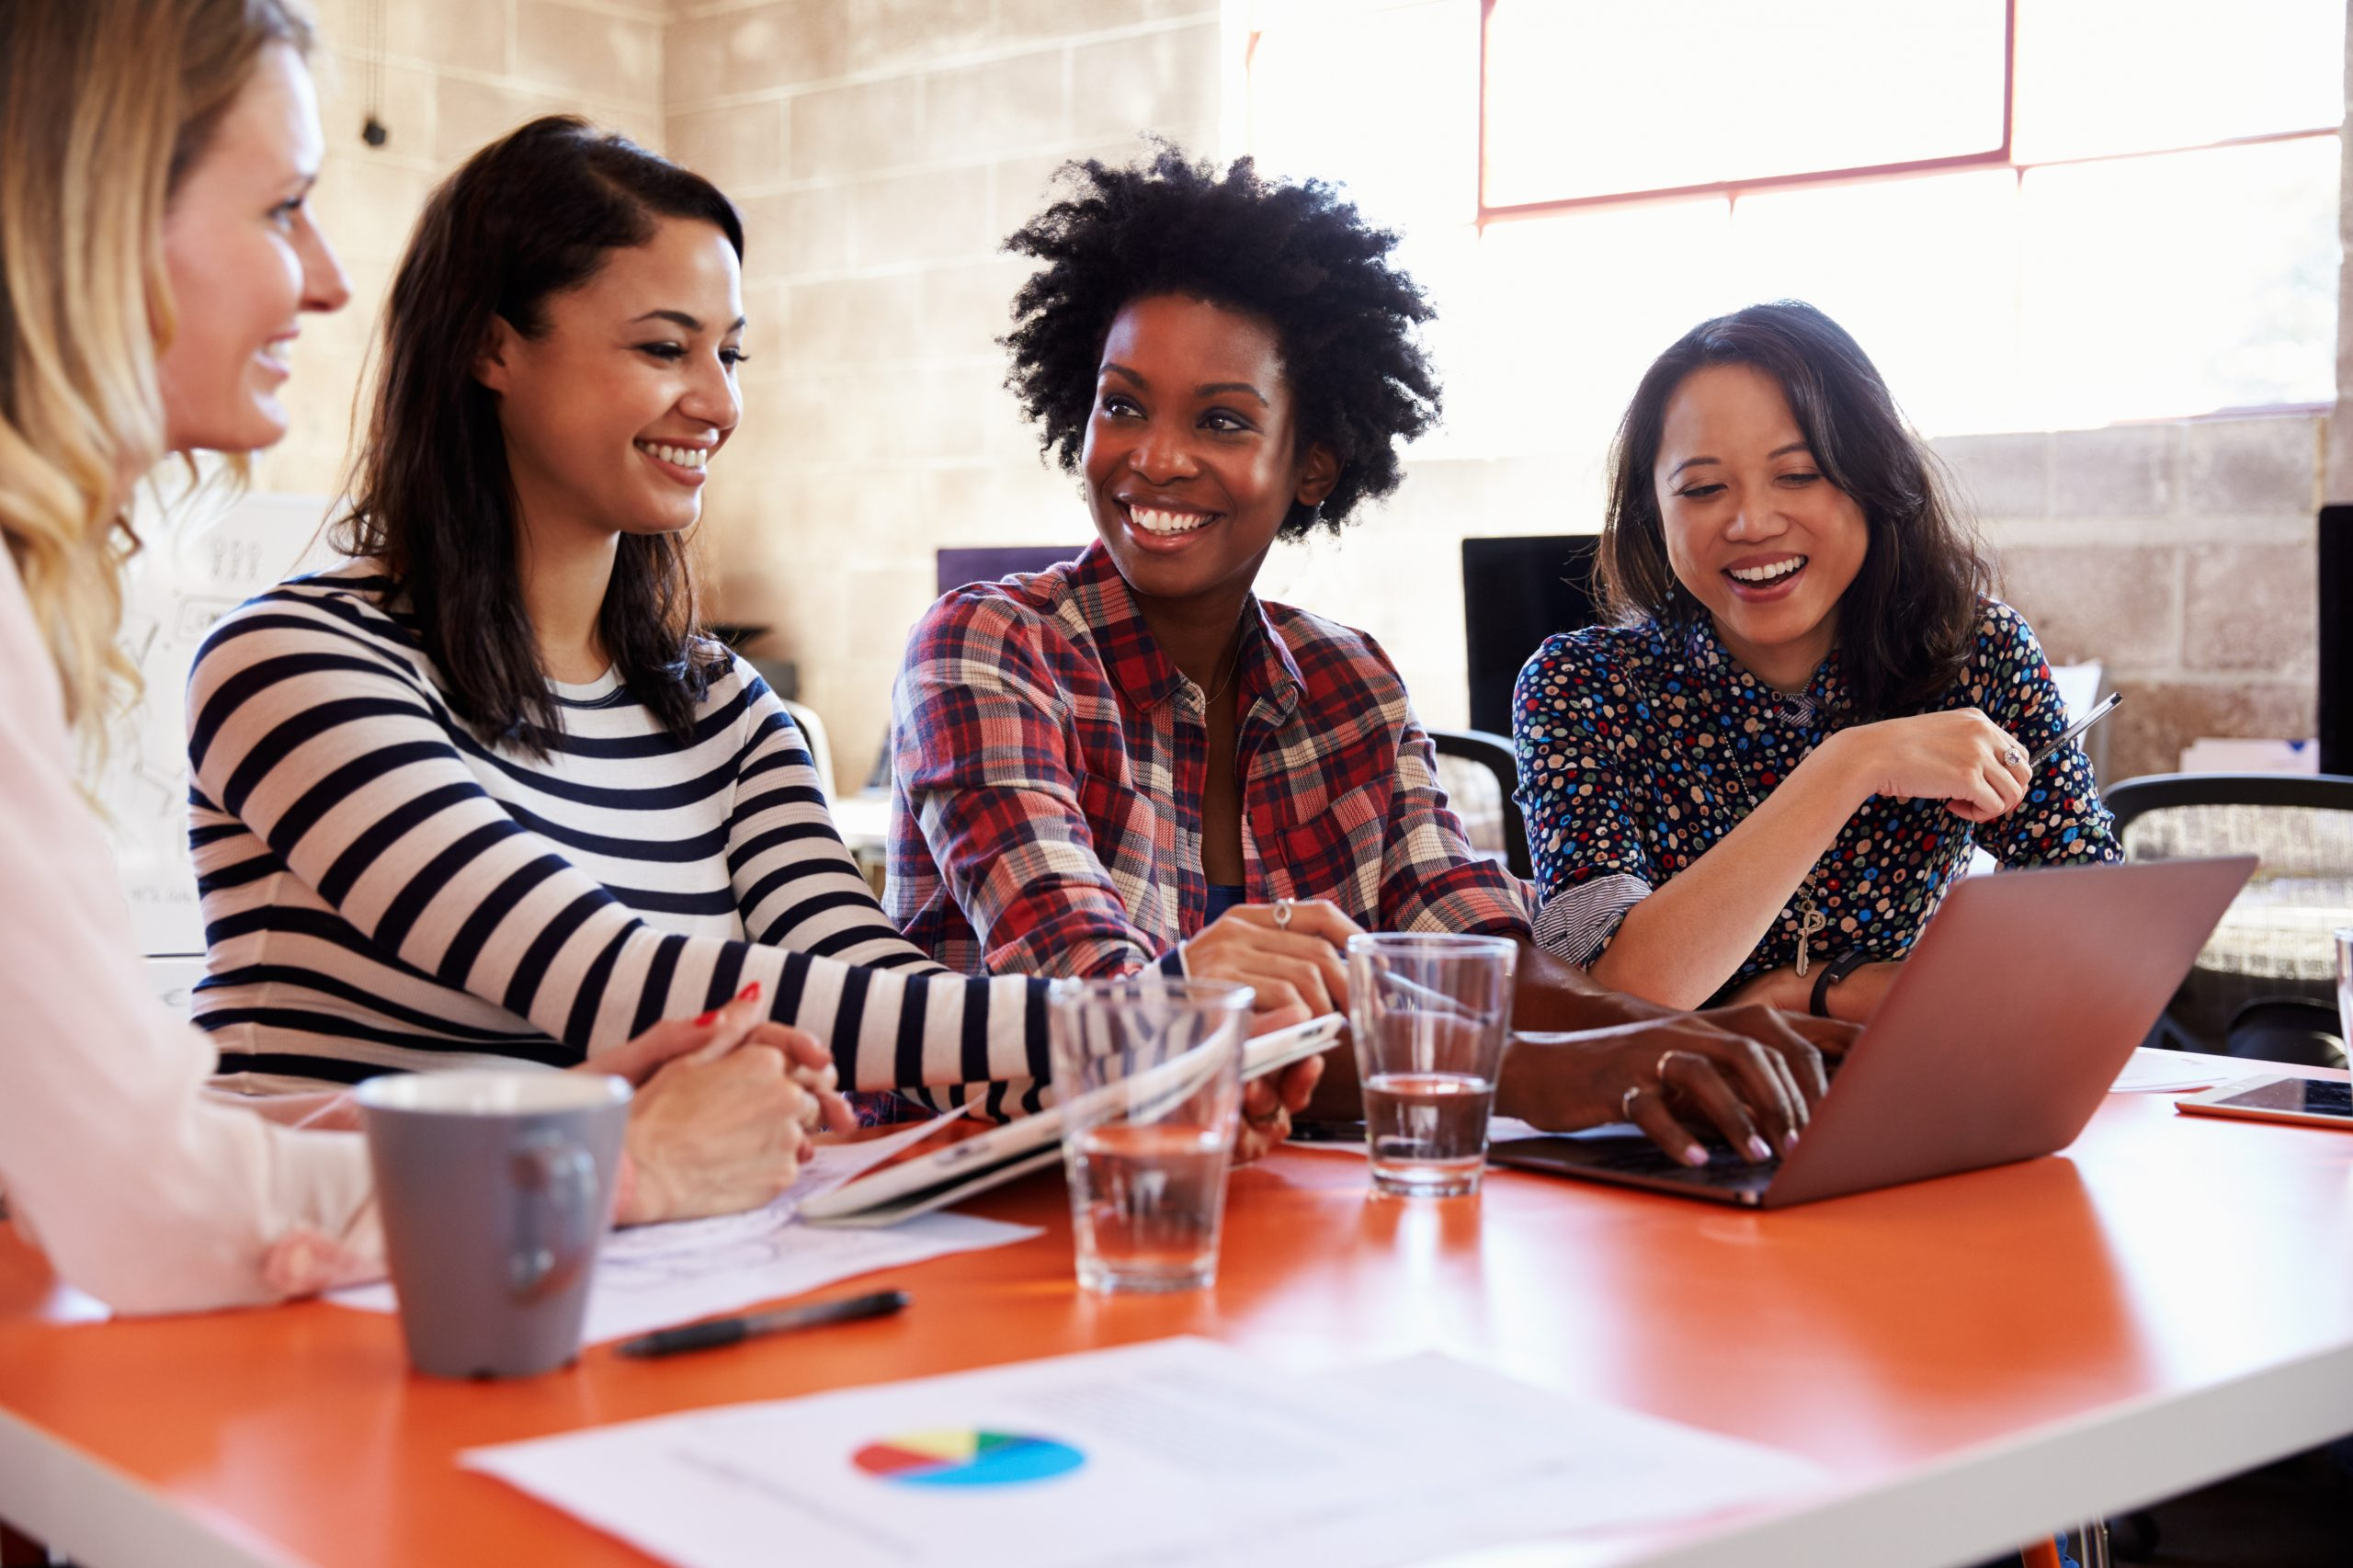 Business Skills to Learn from Women